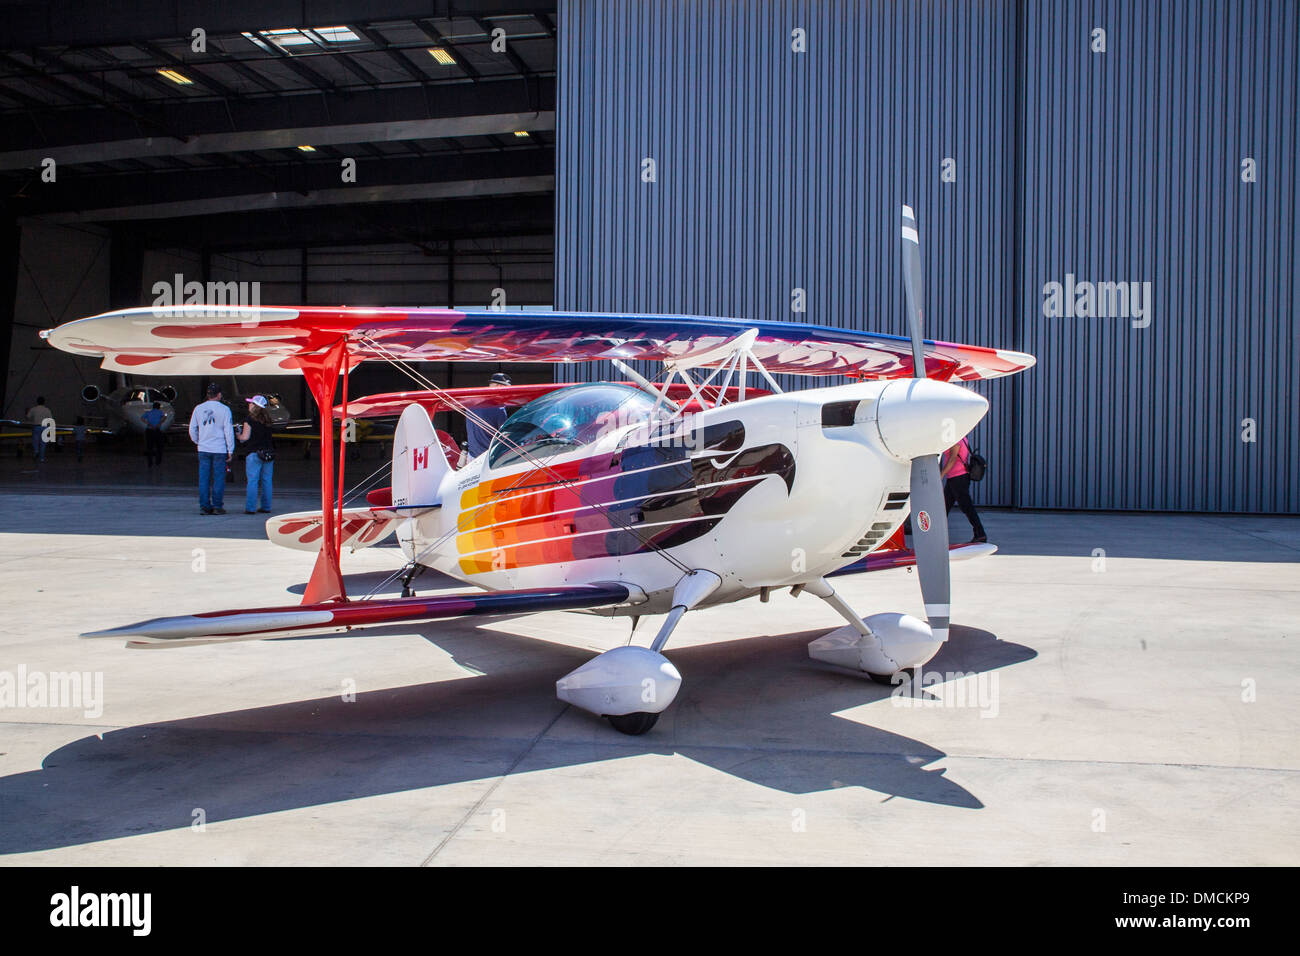 An Aerobatic Plane At the Wings Over Camarillo Airshow in Camarillo California in August of 2011 - Stock Image